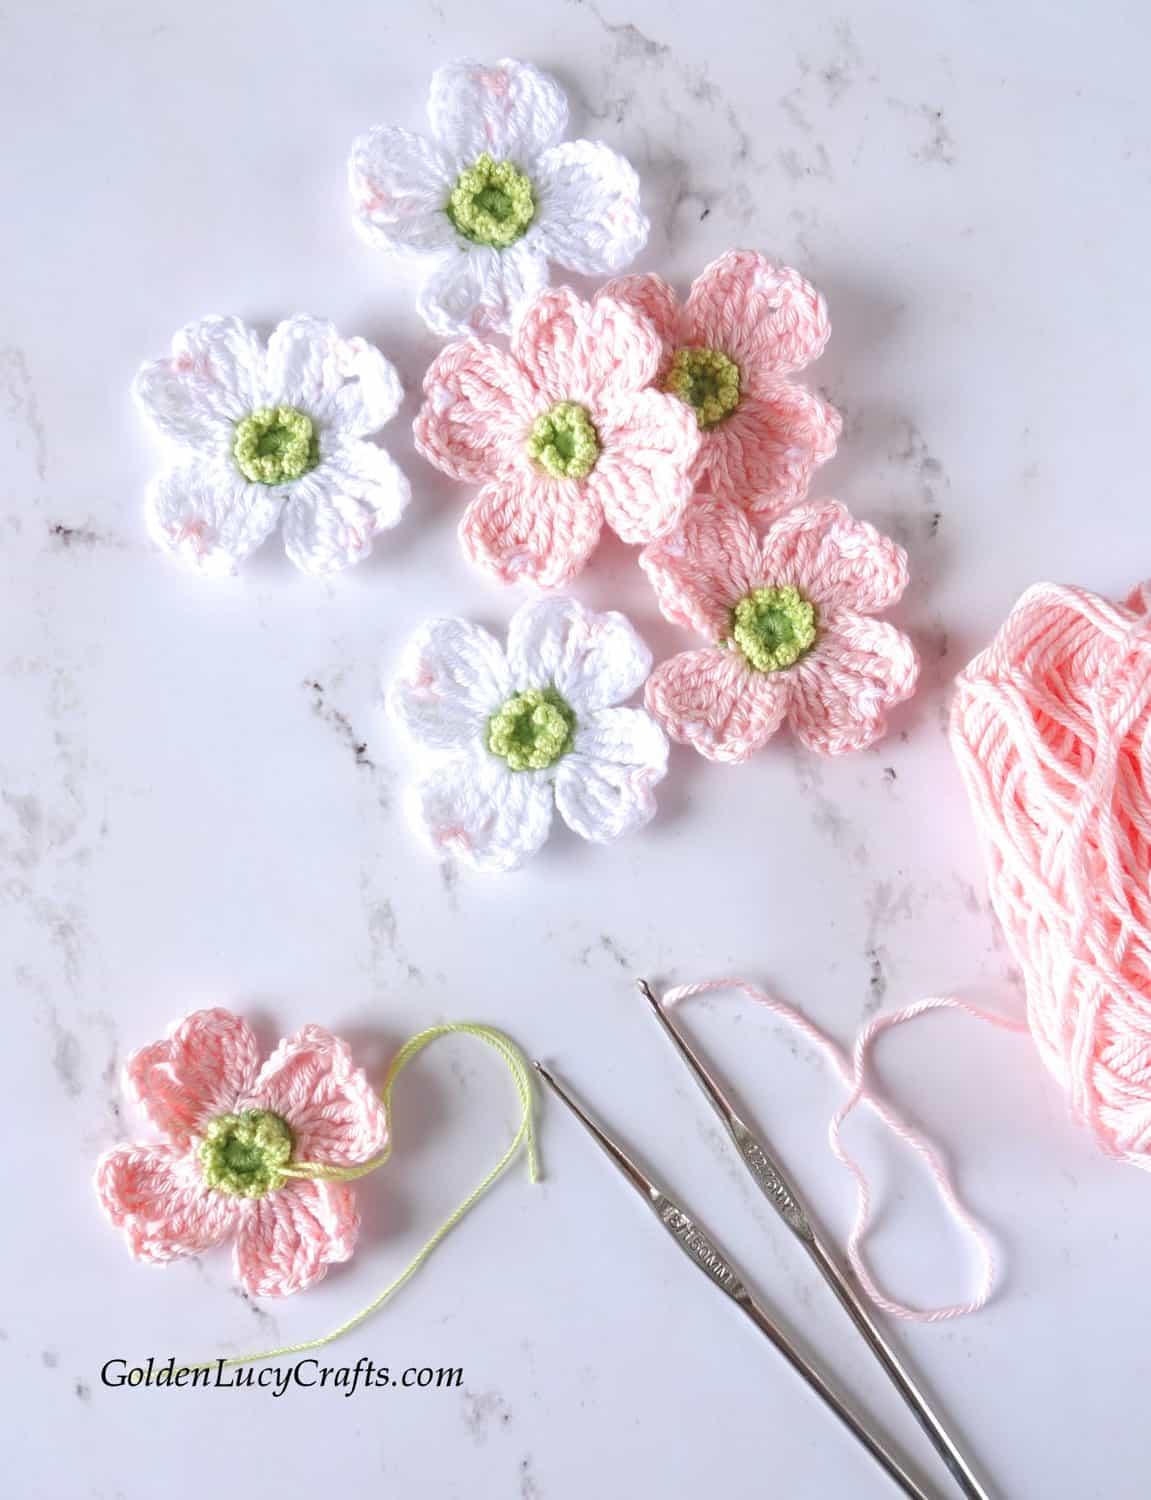 Crocheting dogwood flowers, crochet hooks, skein of pink yarn.